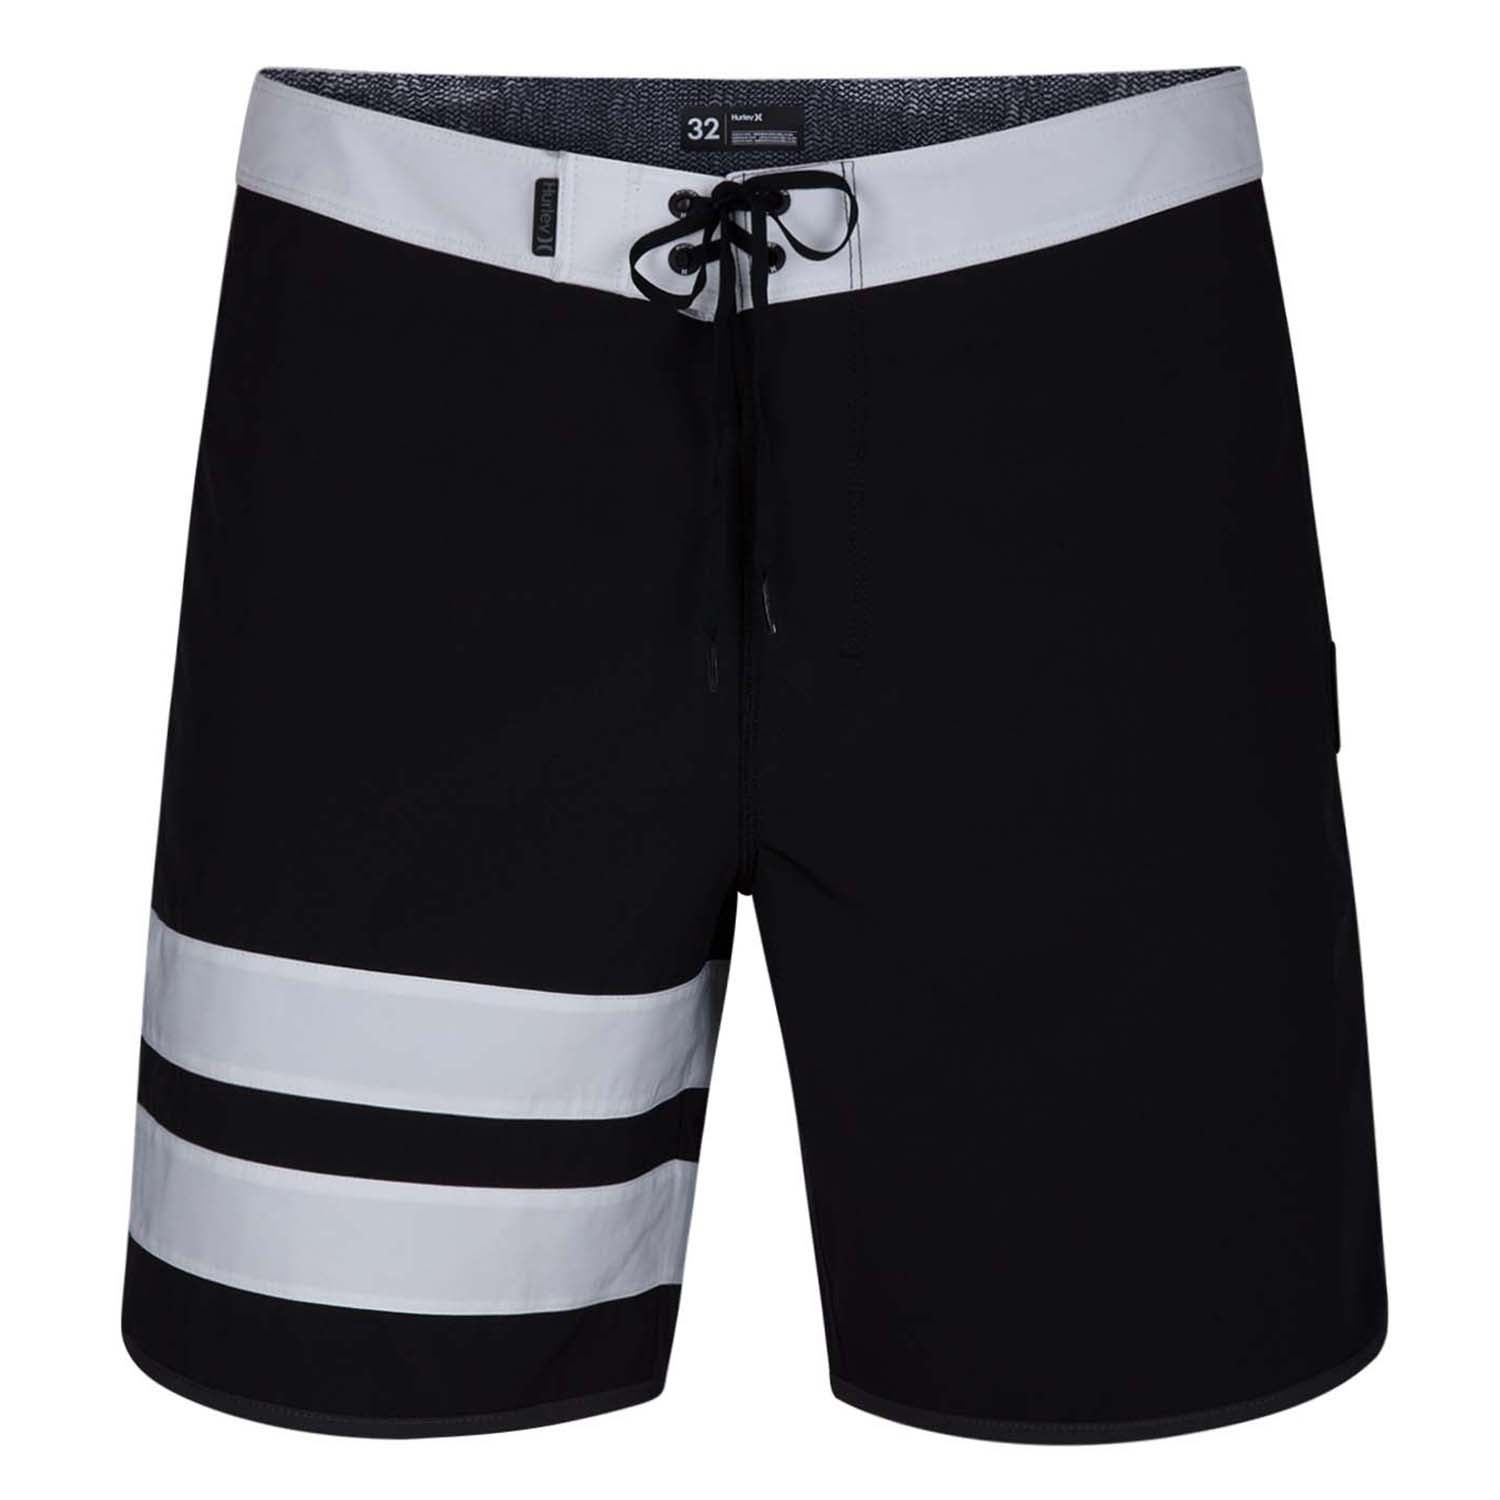 9521eb815b Hurley Phantom Block Party Solid 18in Board Shorts at Extremepie.com